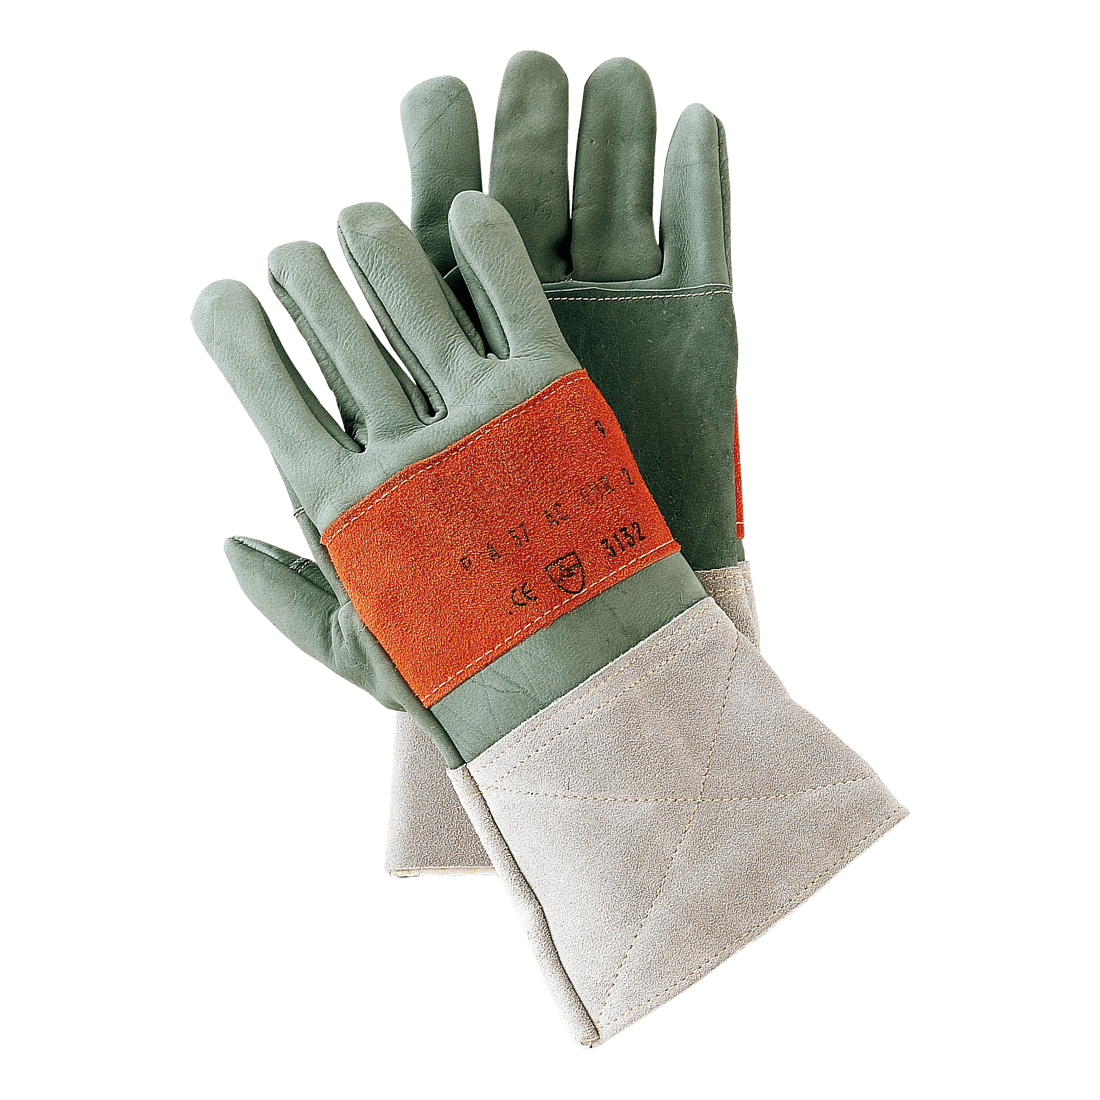 Chainsaw Protective Glove